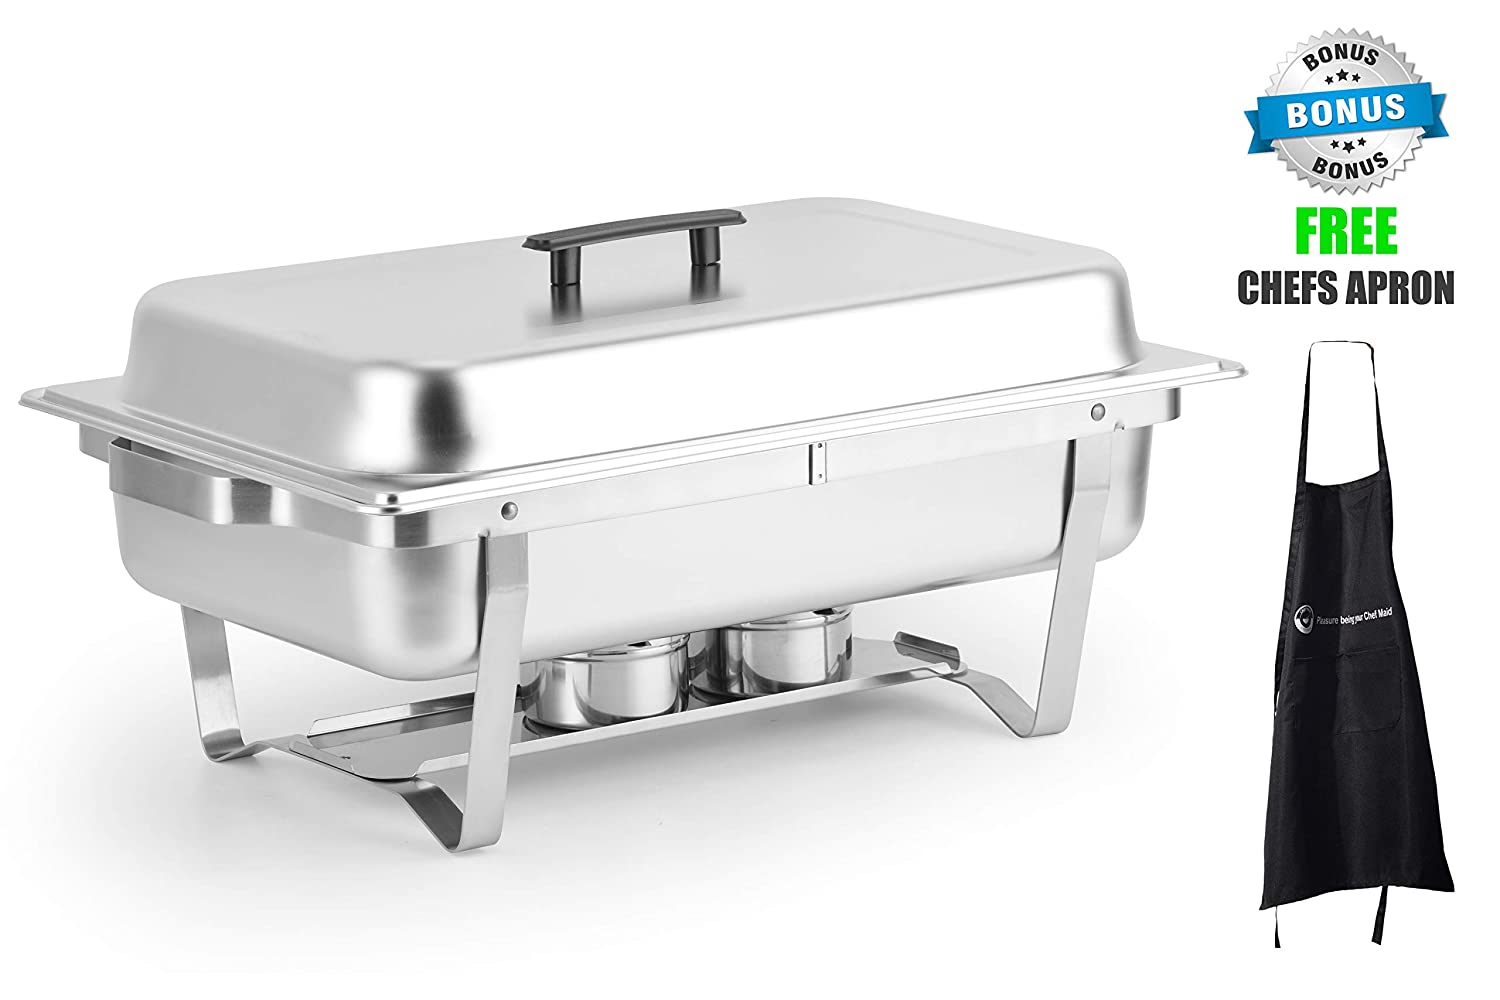 ChefMaid 8 Quart Full Size Stainless Steel Chafer Set with Folding Frame + Free Chefs Apron ChefMaid USA